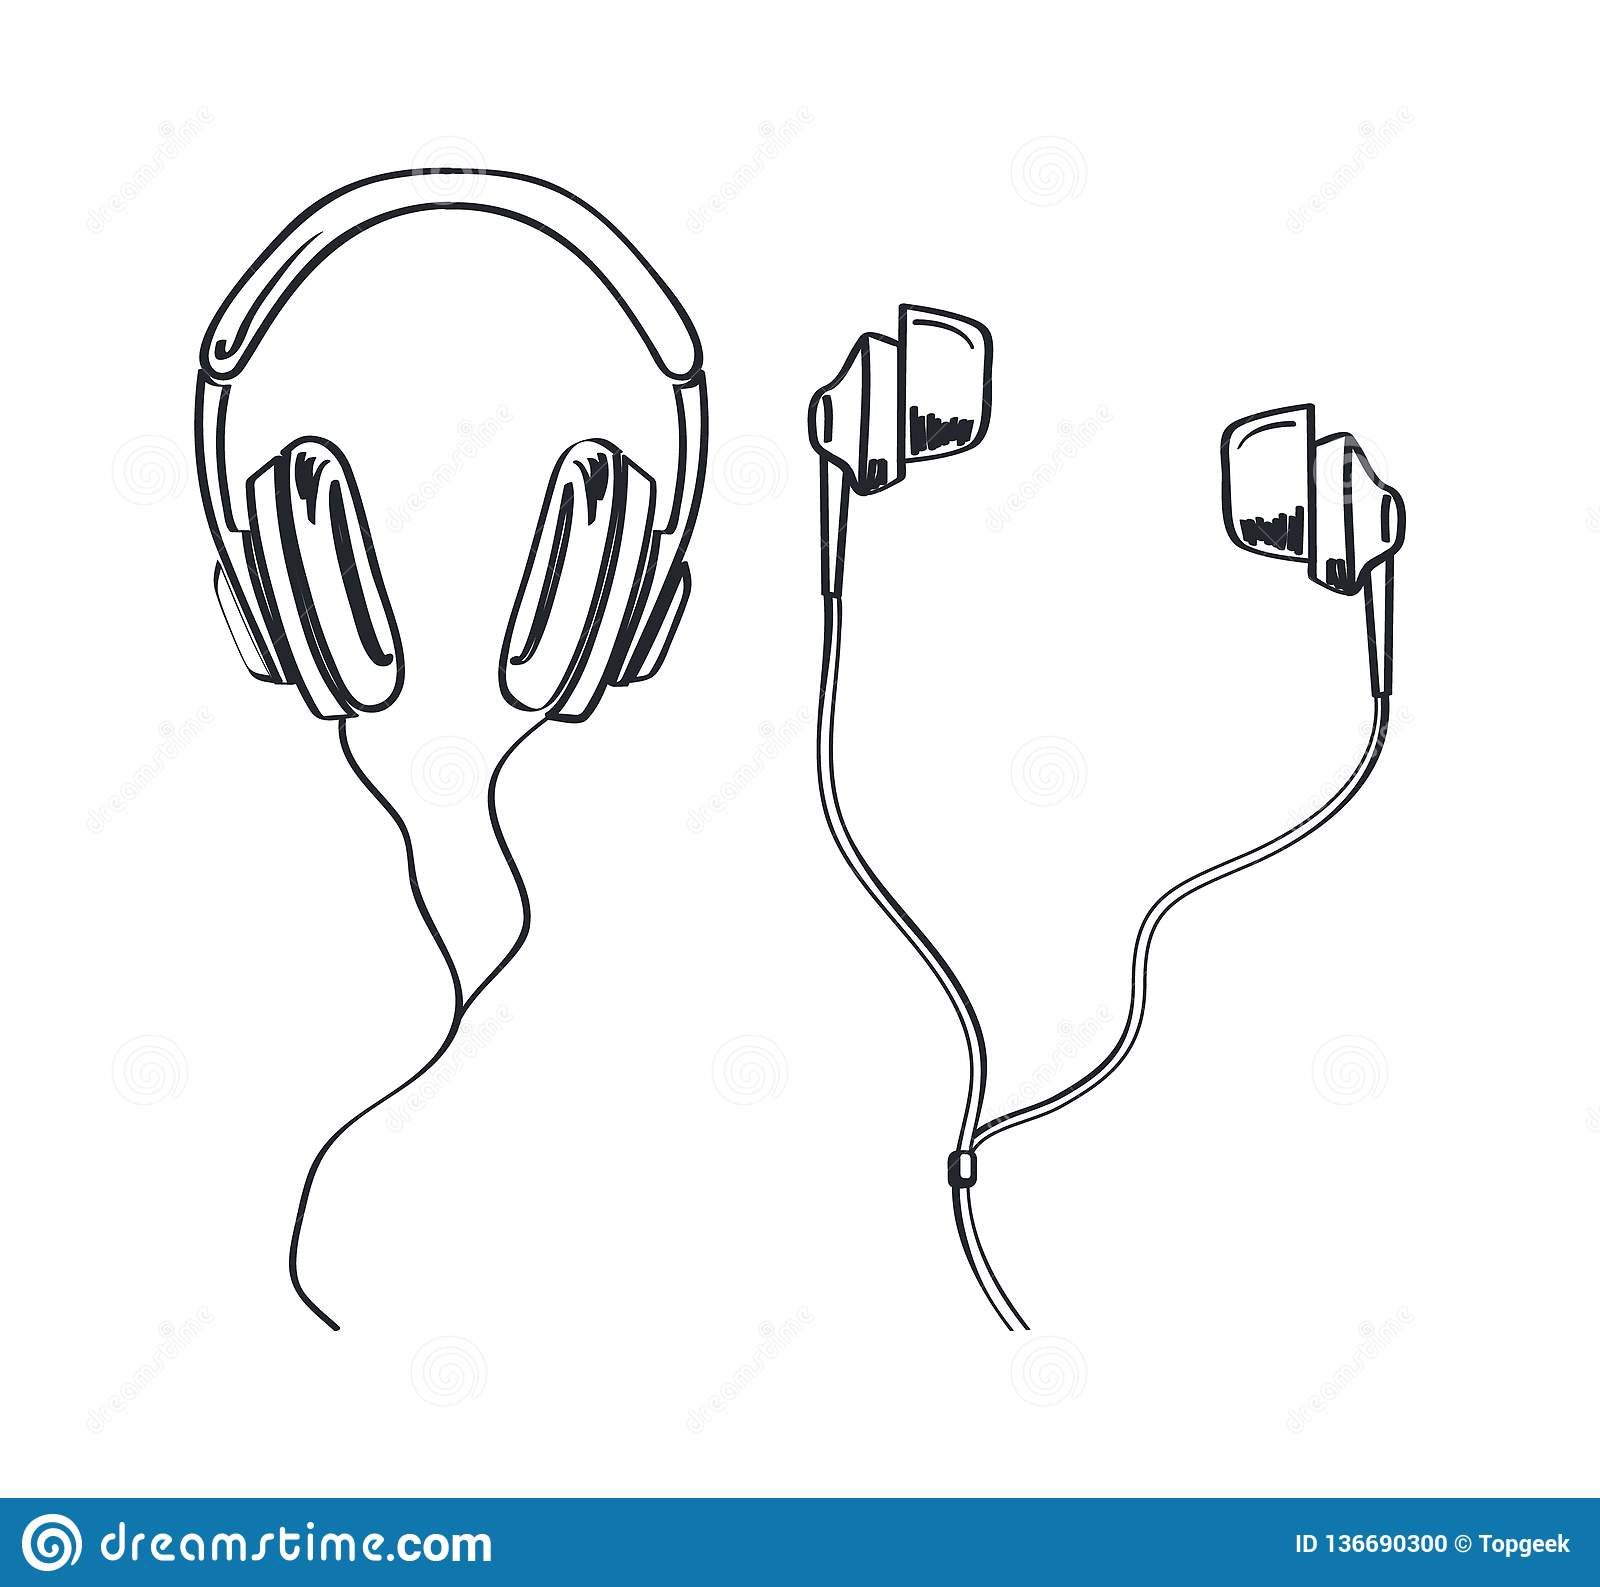 Headphones types earphones kinds monochrome sketches outline vector line art headset with cable and adjustable headband listening music device accessory